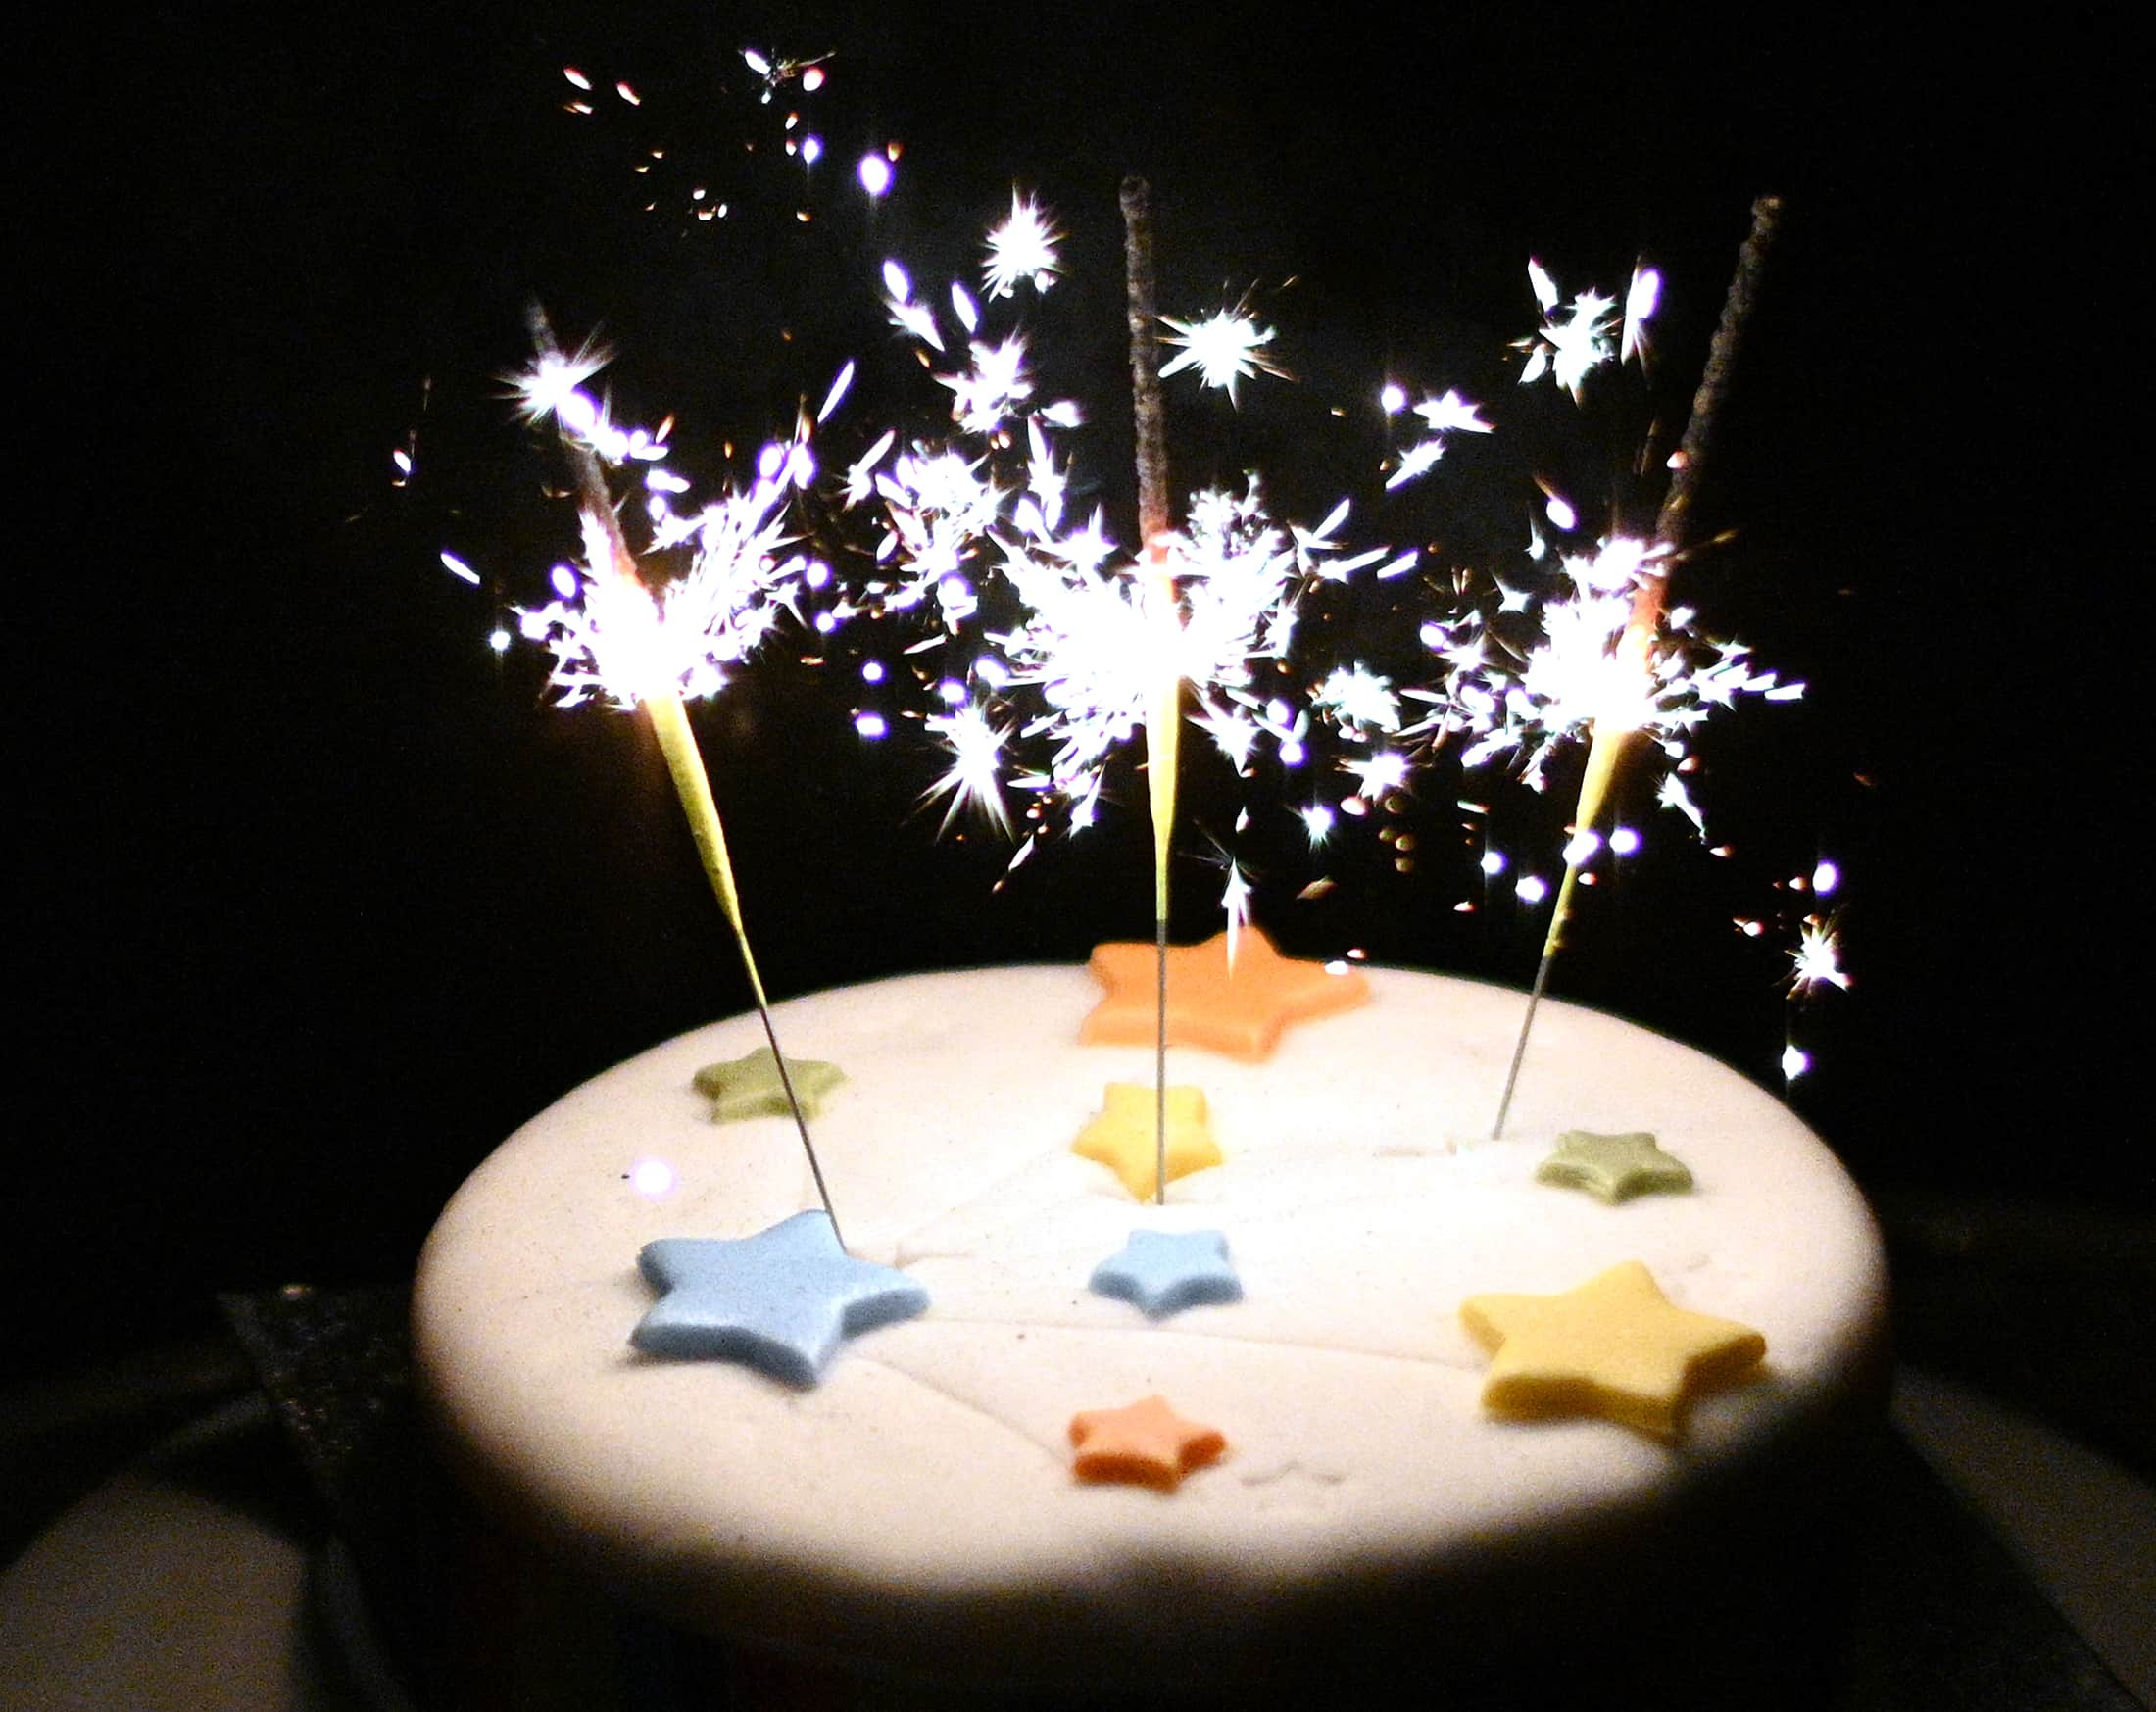 Sparklers on a cake